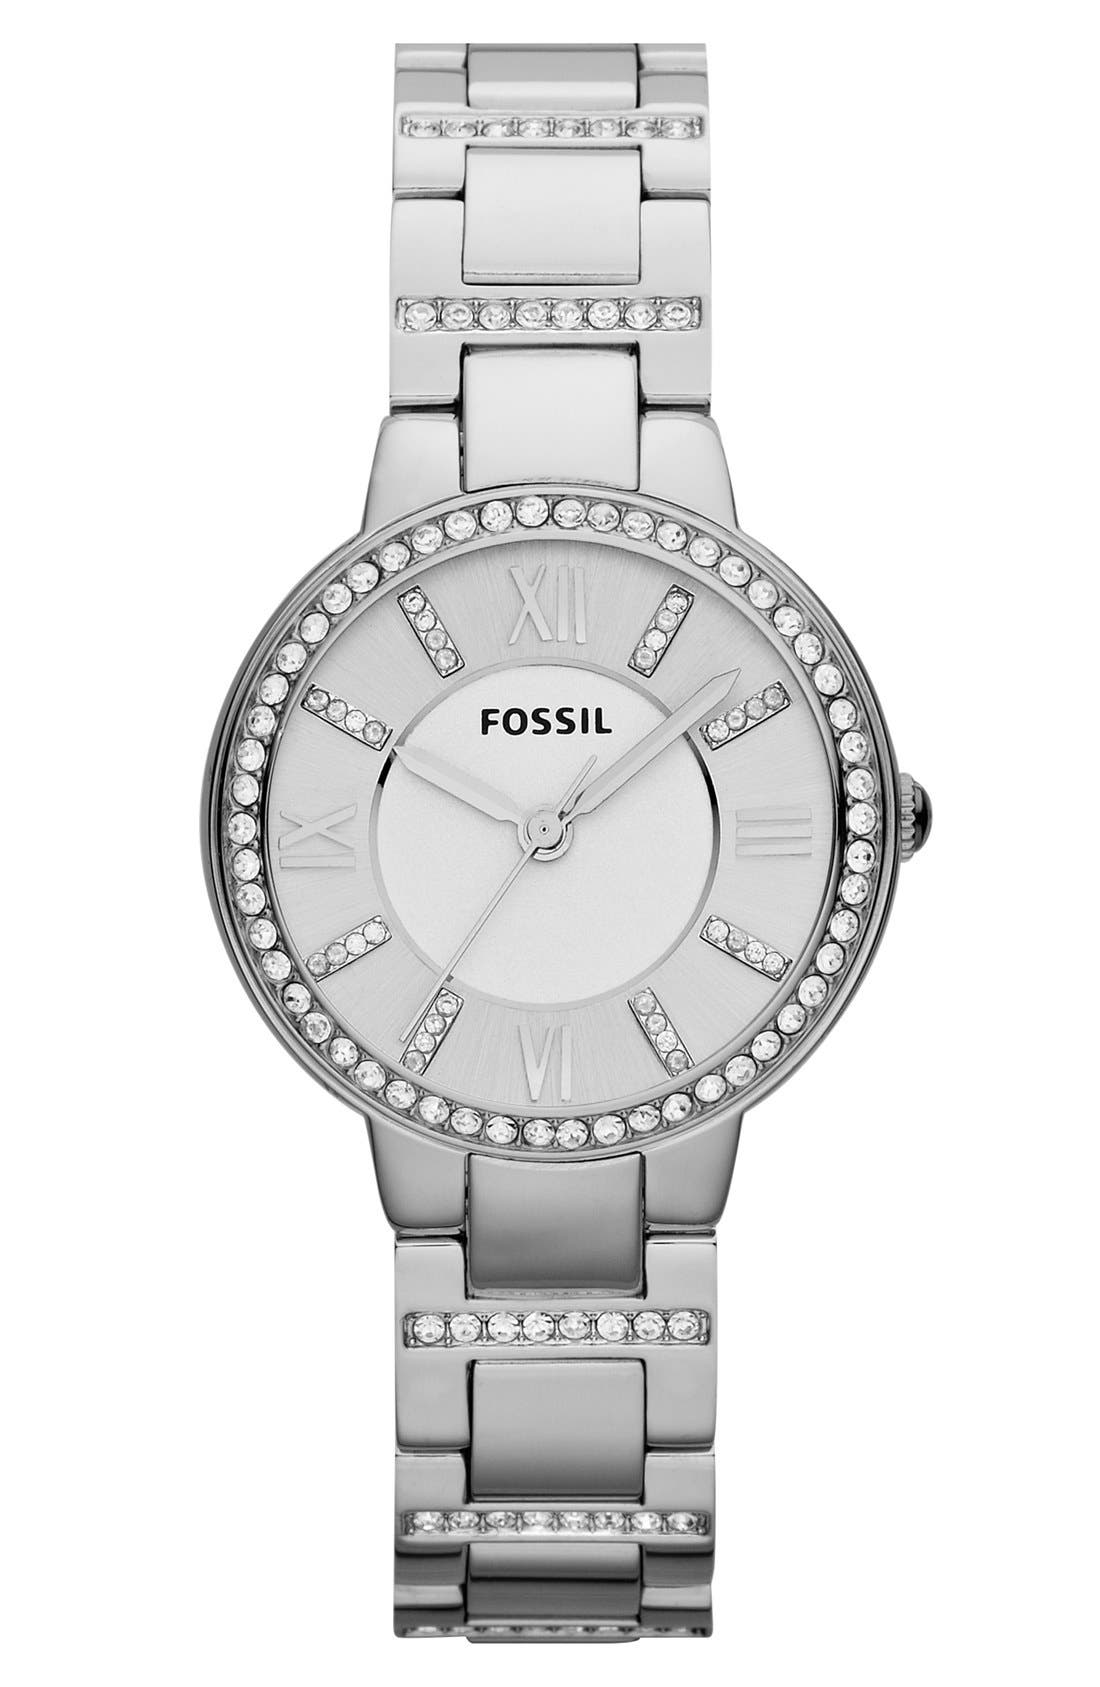 Fossil 'Virginia' Crystal Accent Bracelet Watch, 30mm